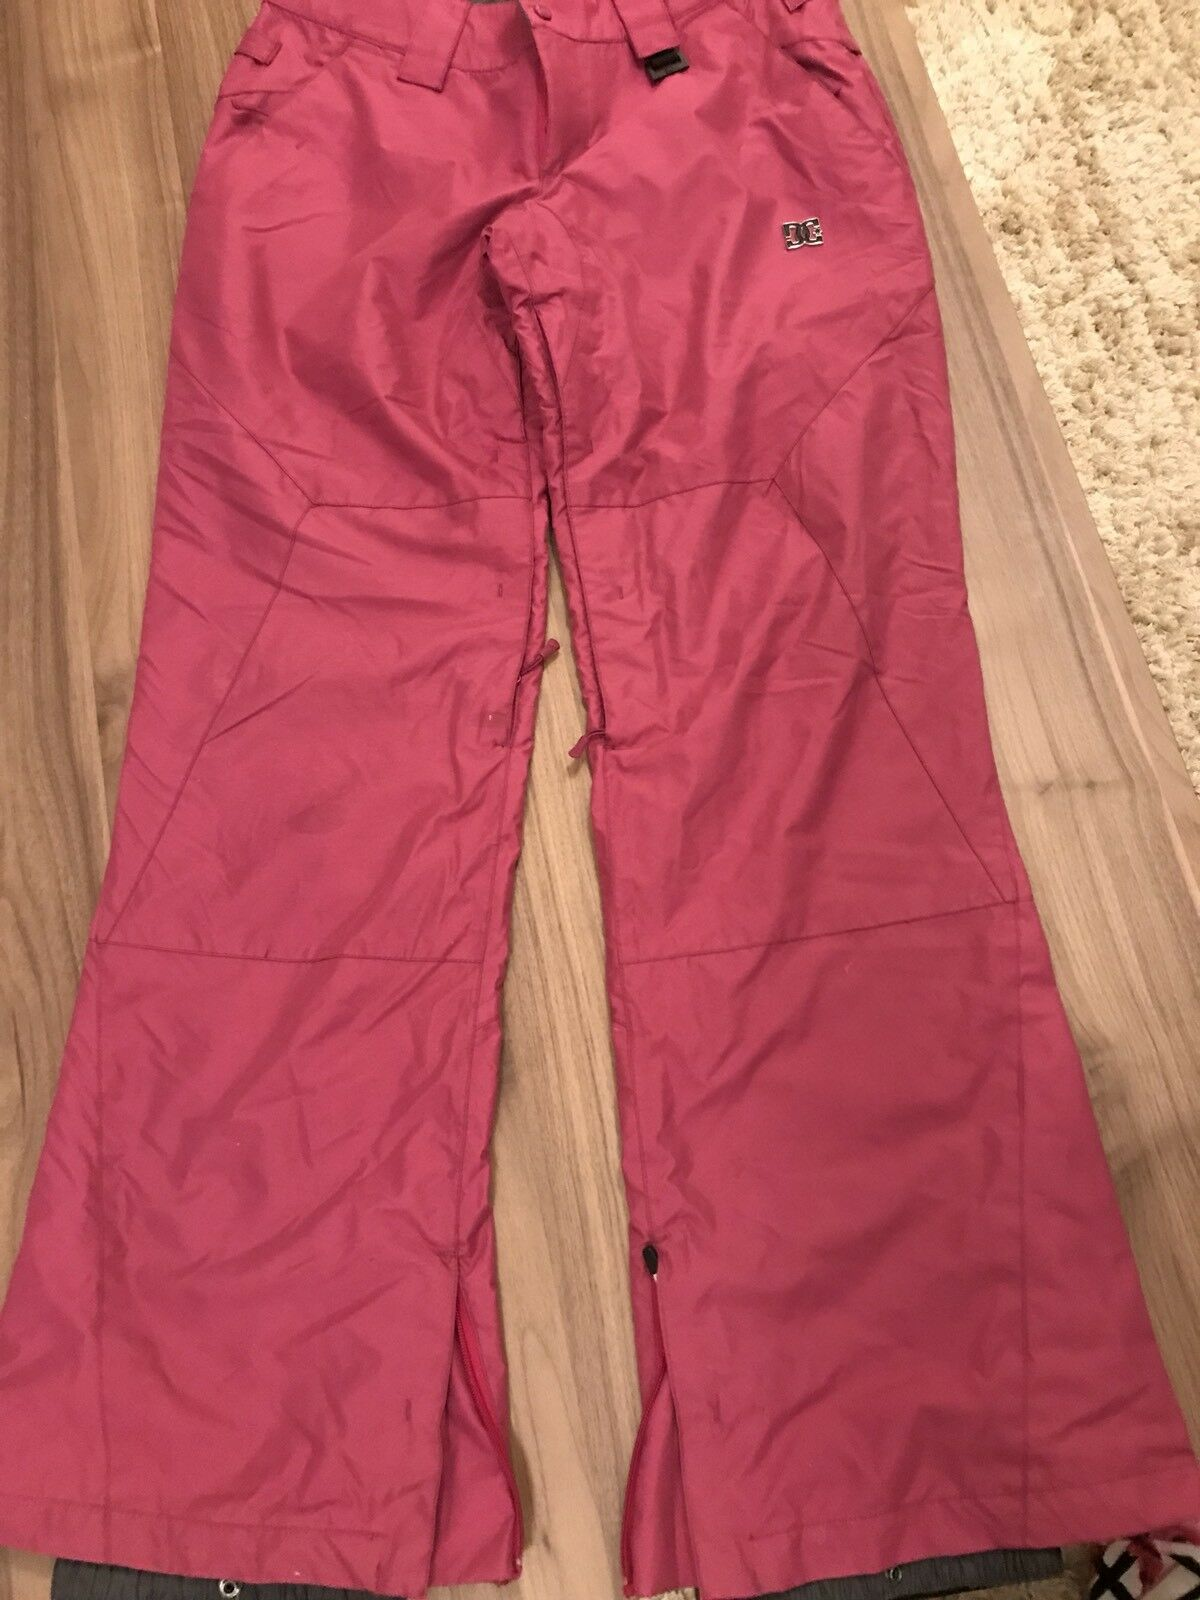 DC SNOW PANTS SKI SNOWBOARD SMALL WOMAN INSULATED WATERPROOF WINDPROOF